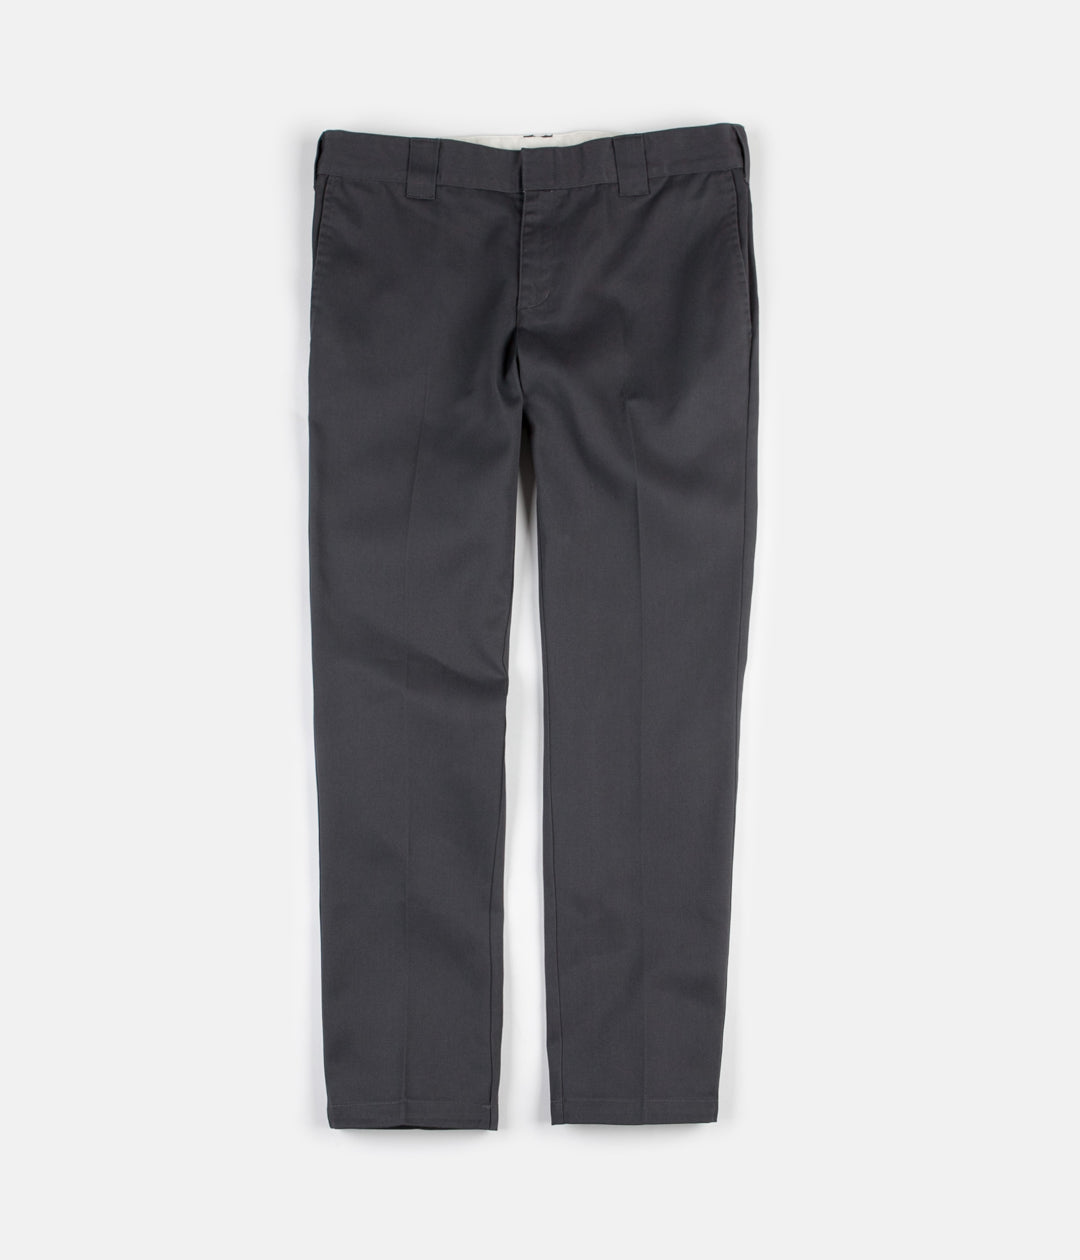 Dickies 872 Slim Work Trousers - Charcoal Grey